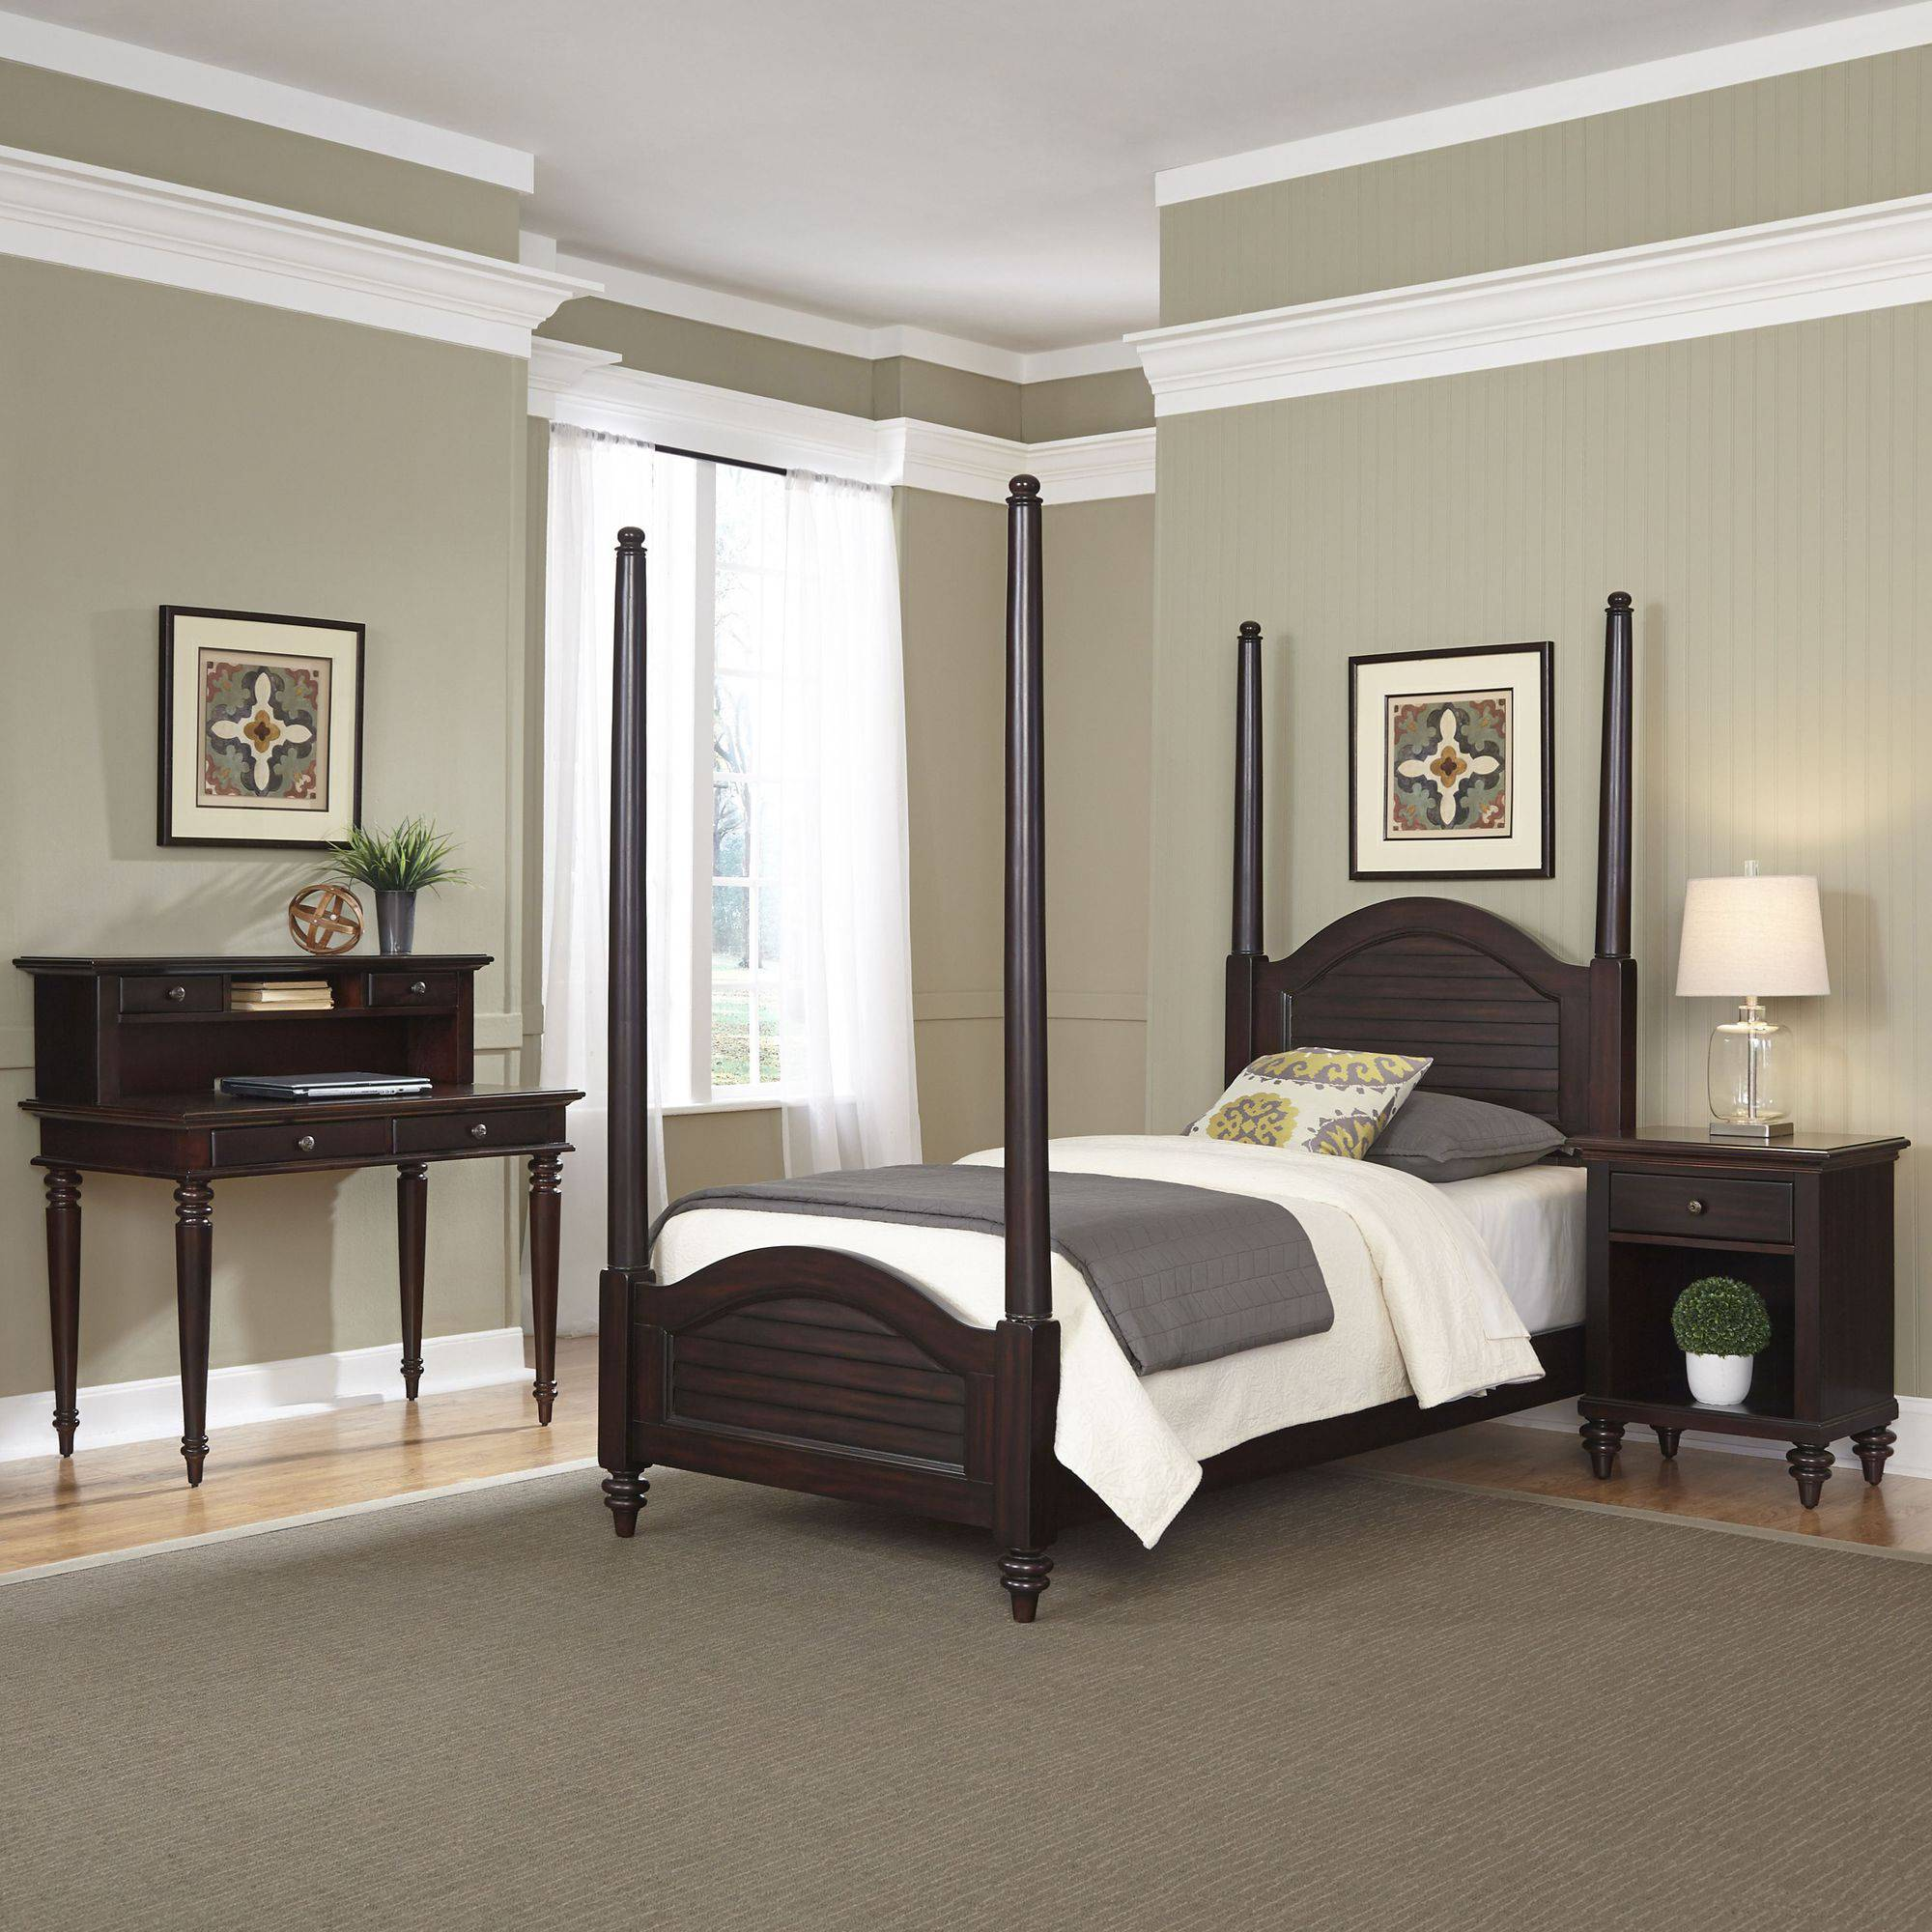 Home Styles Furniture Bermuda Espresso Twin Poster Bed, Night Stand and Student Desk with Hutch